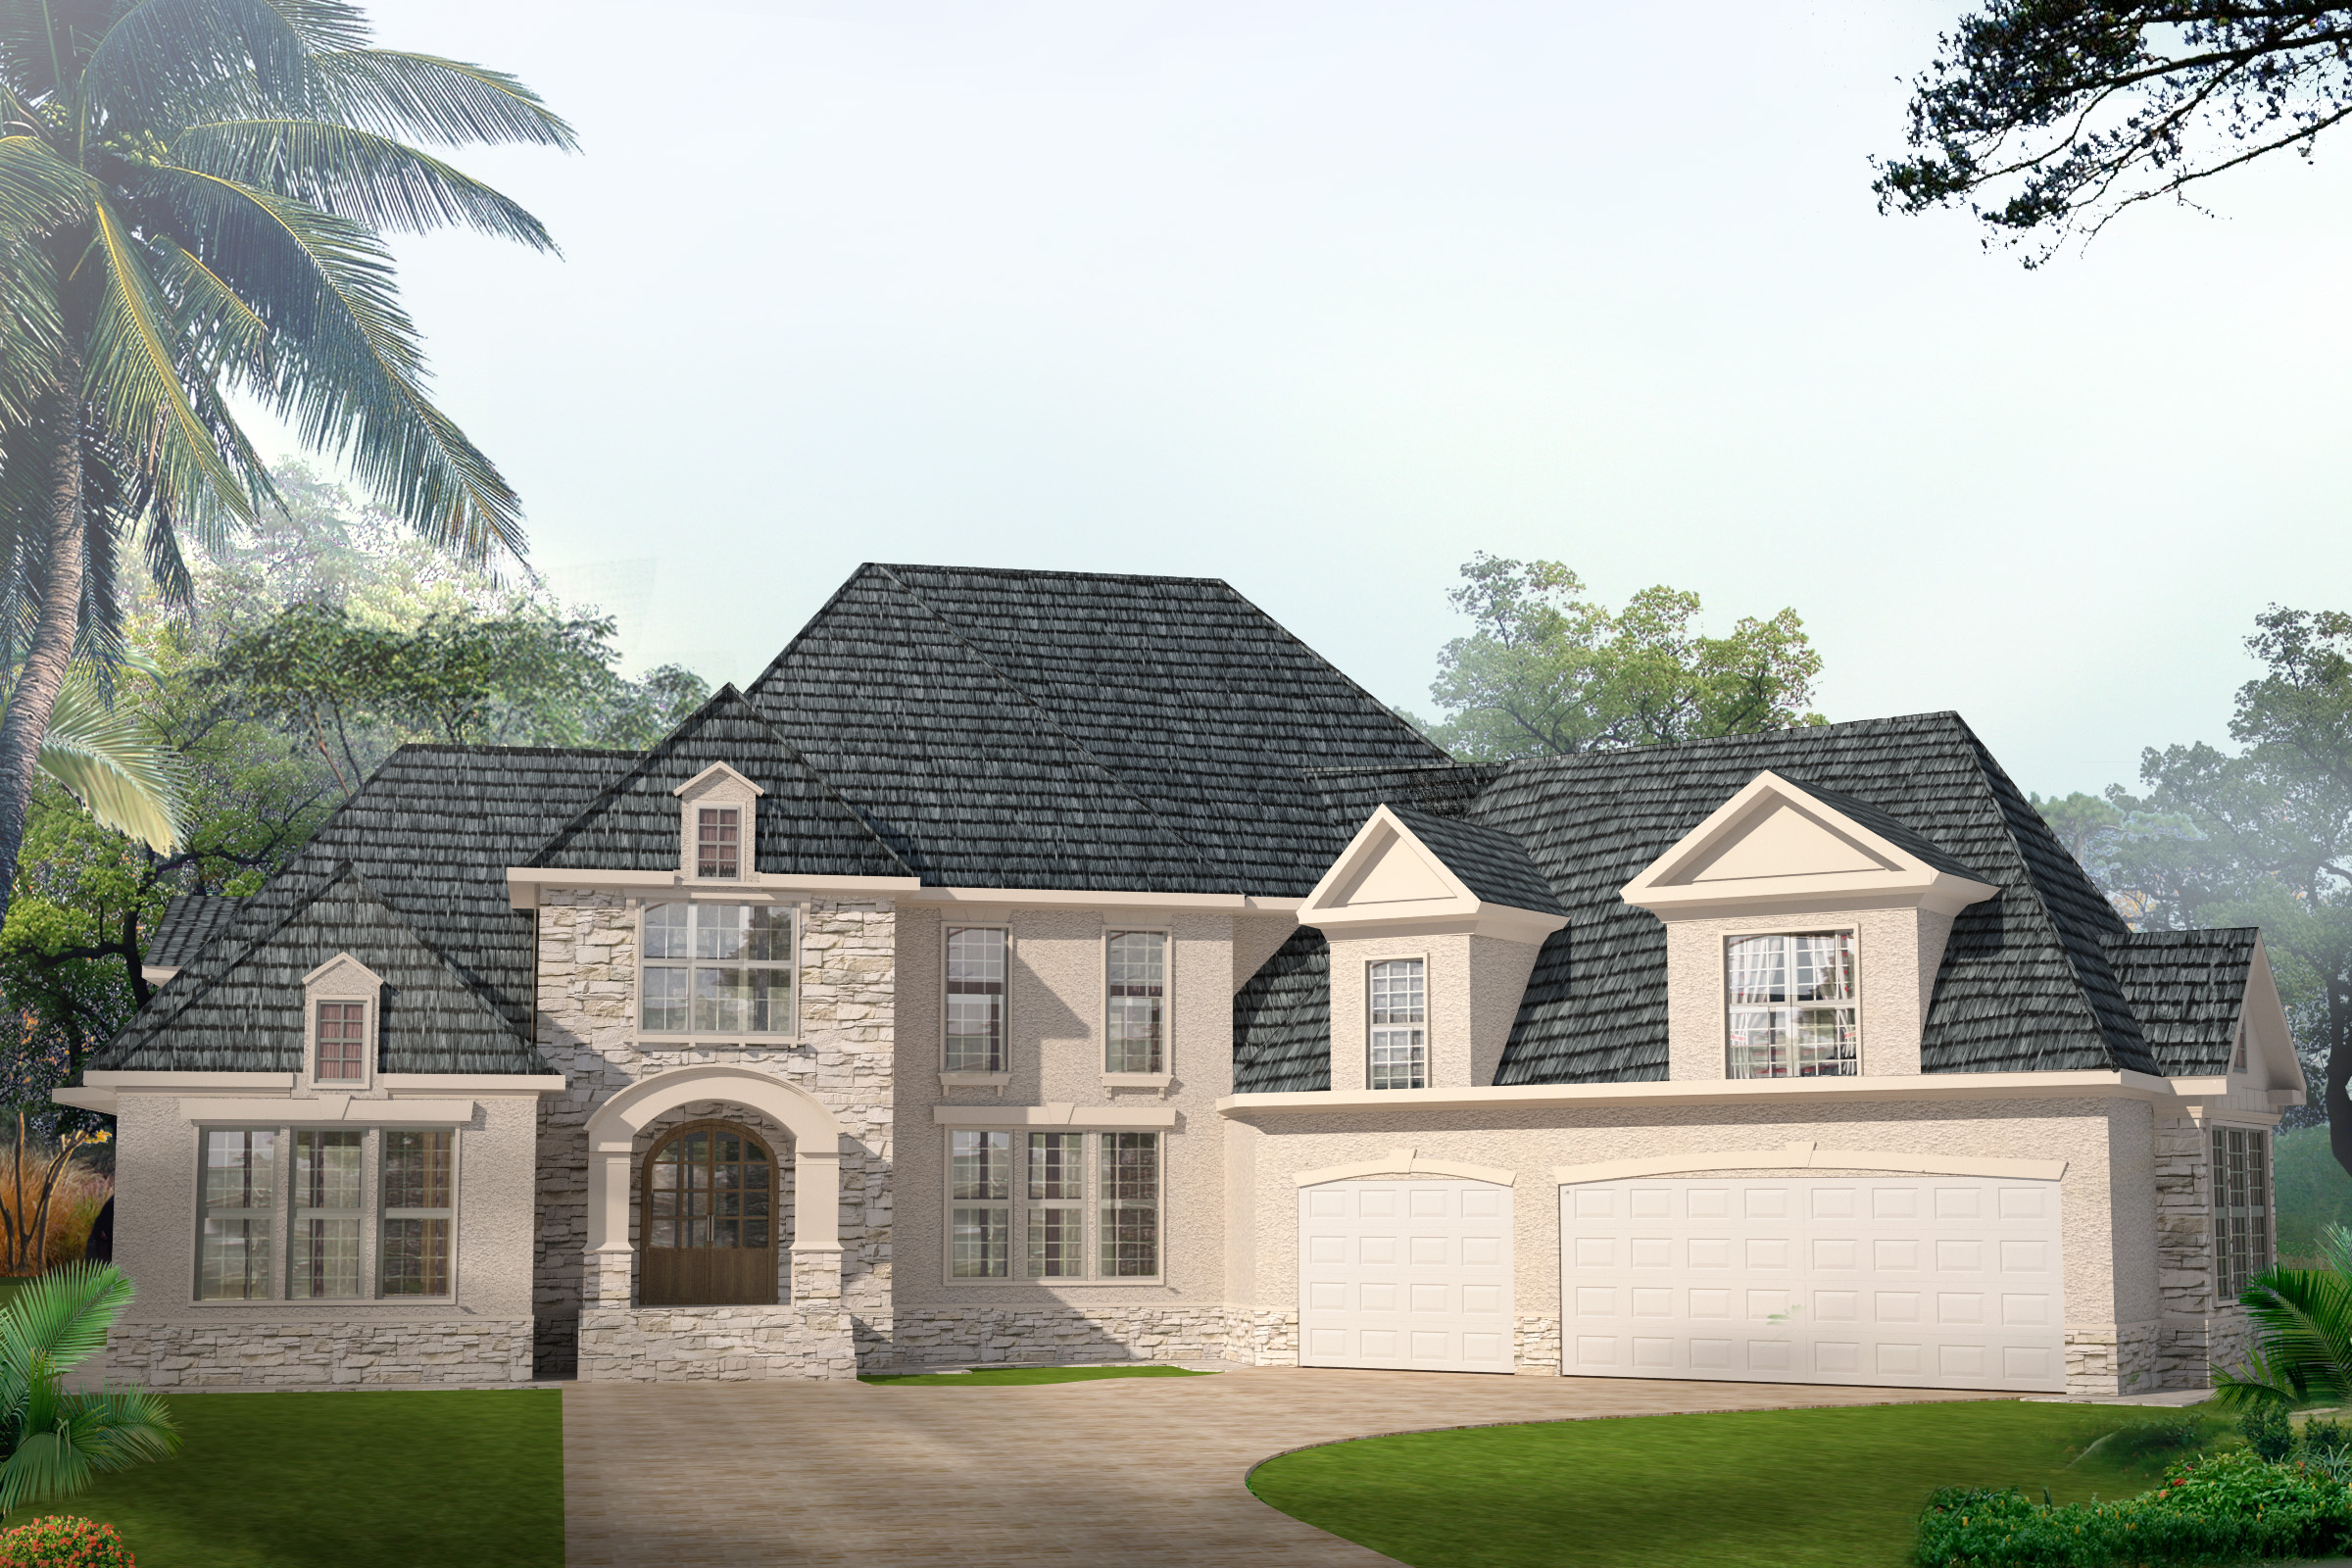 The atlantan infinity house plans Atlanta home plans